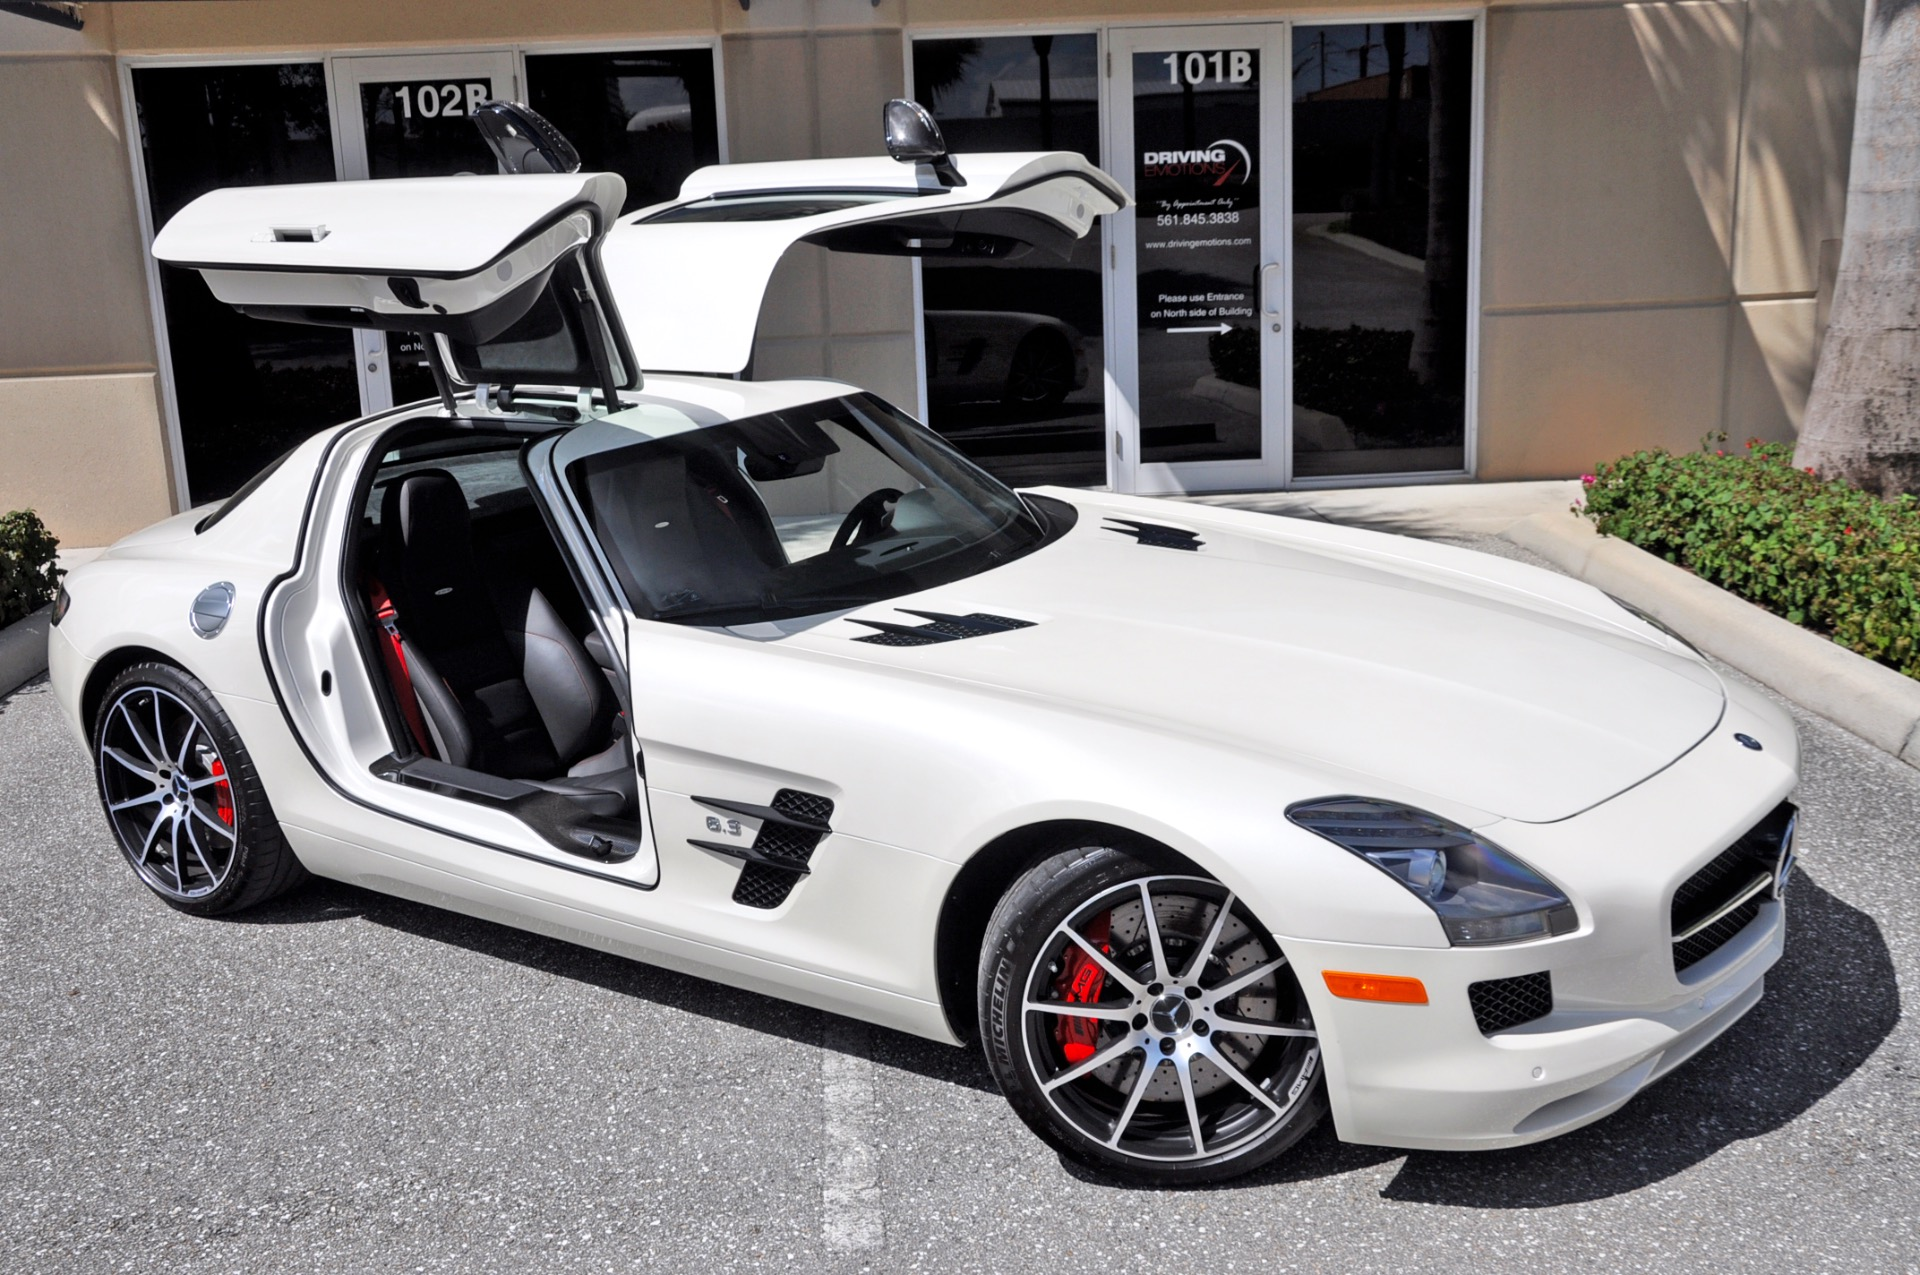 2013 Mercedes Benz Sls Amg Gt Gullwing Coupe Stock 5902 For Sale